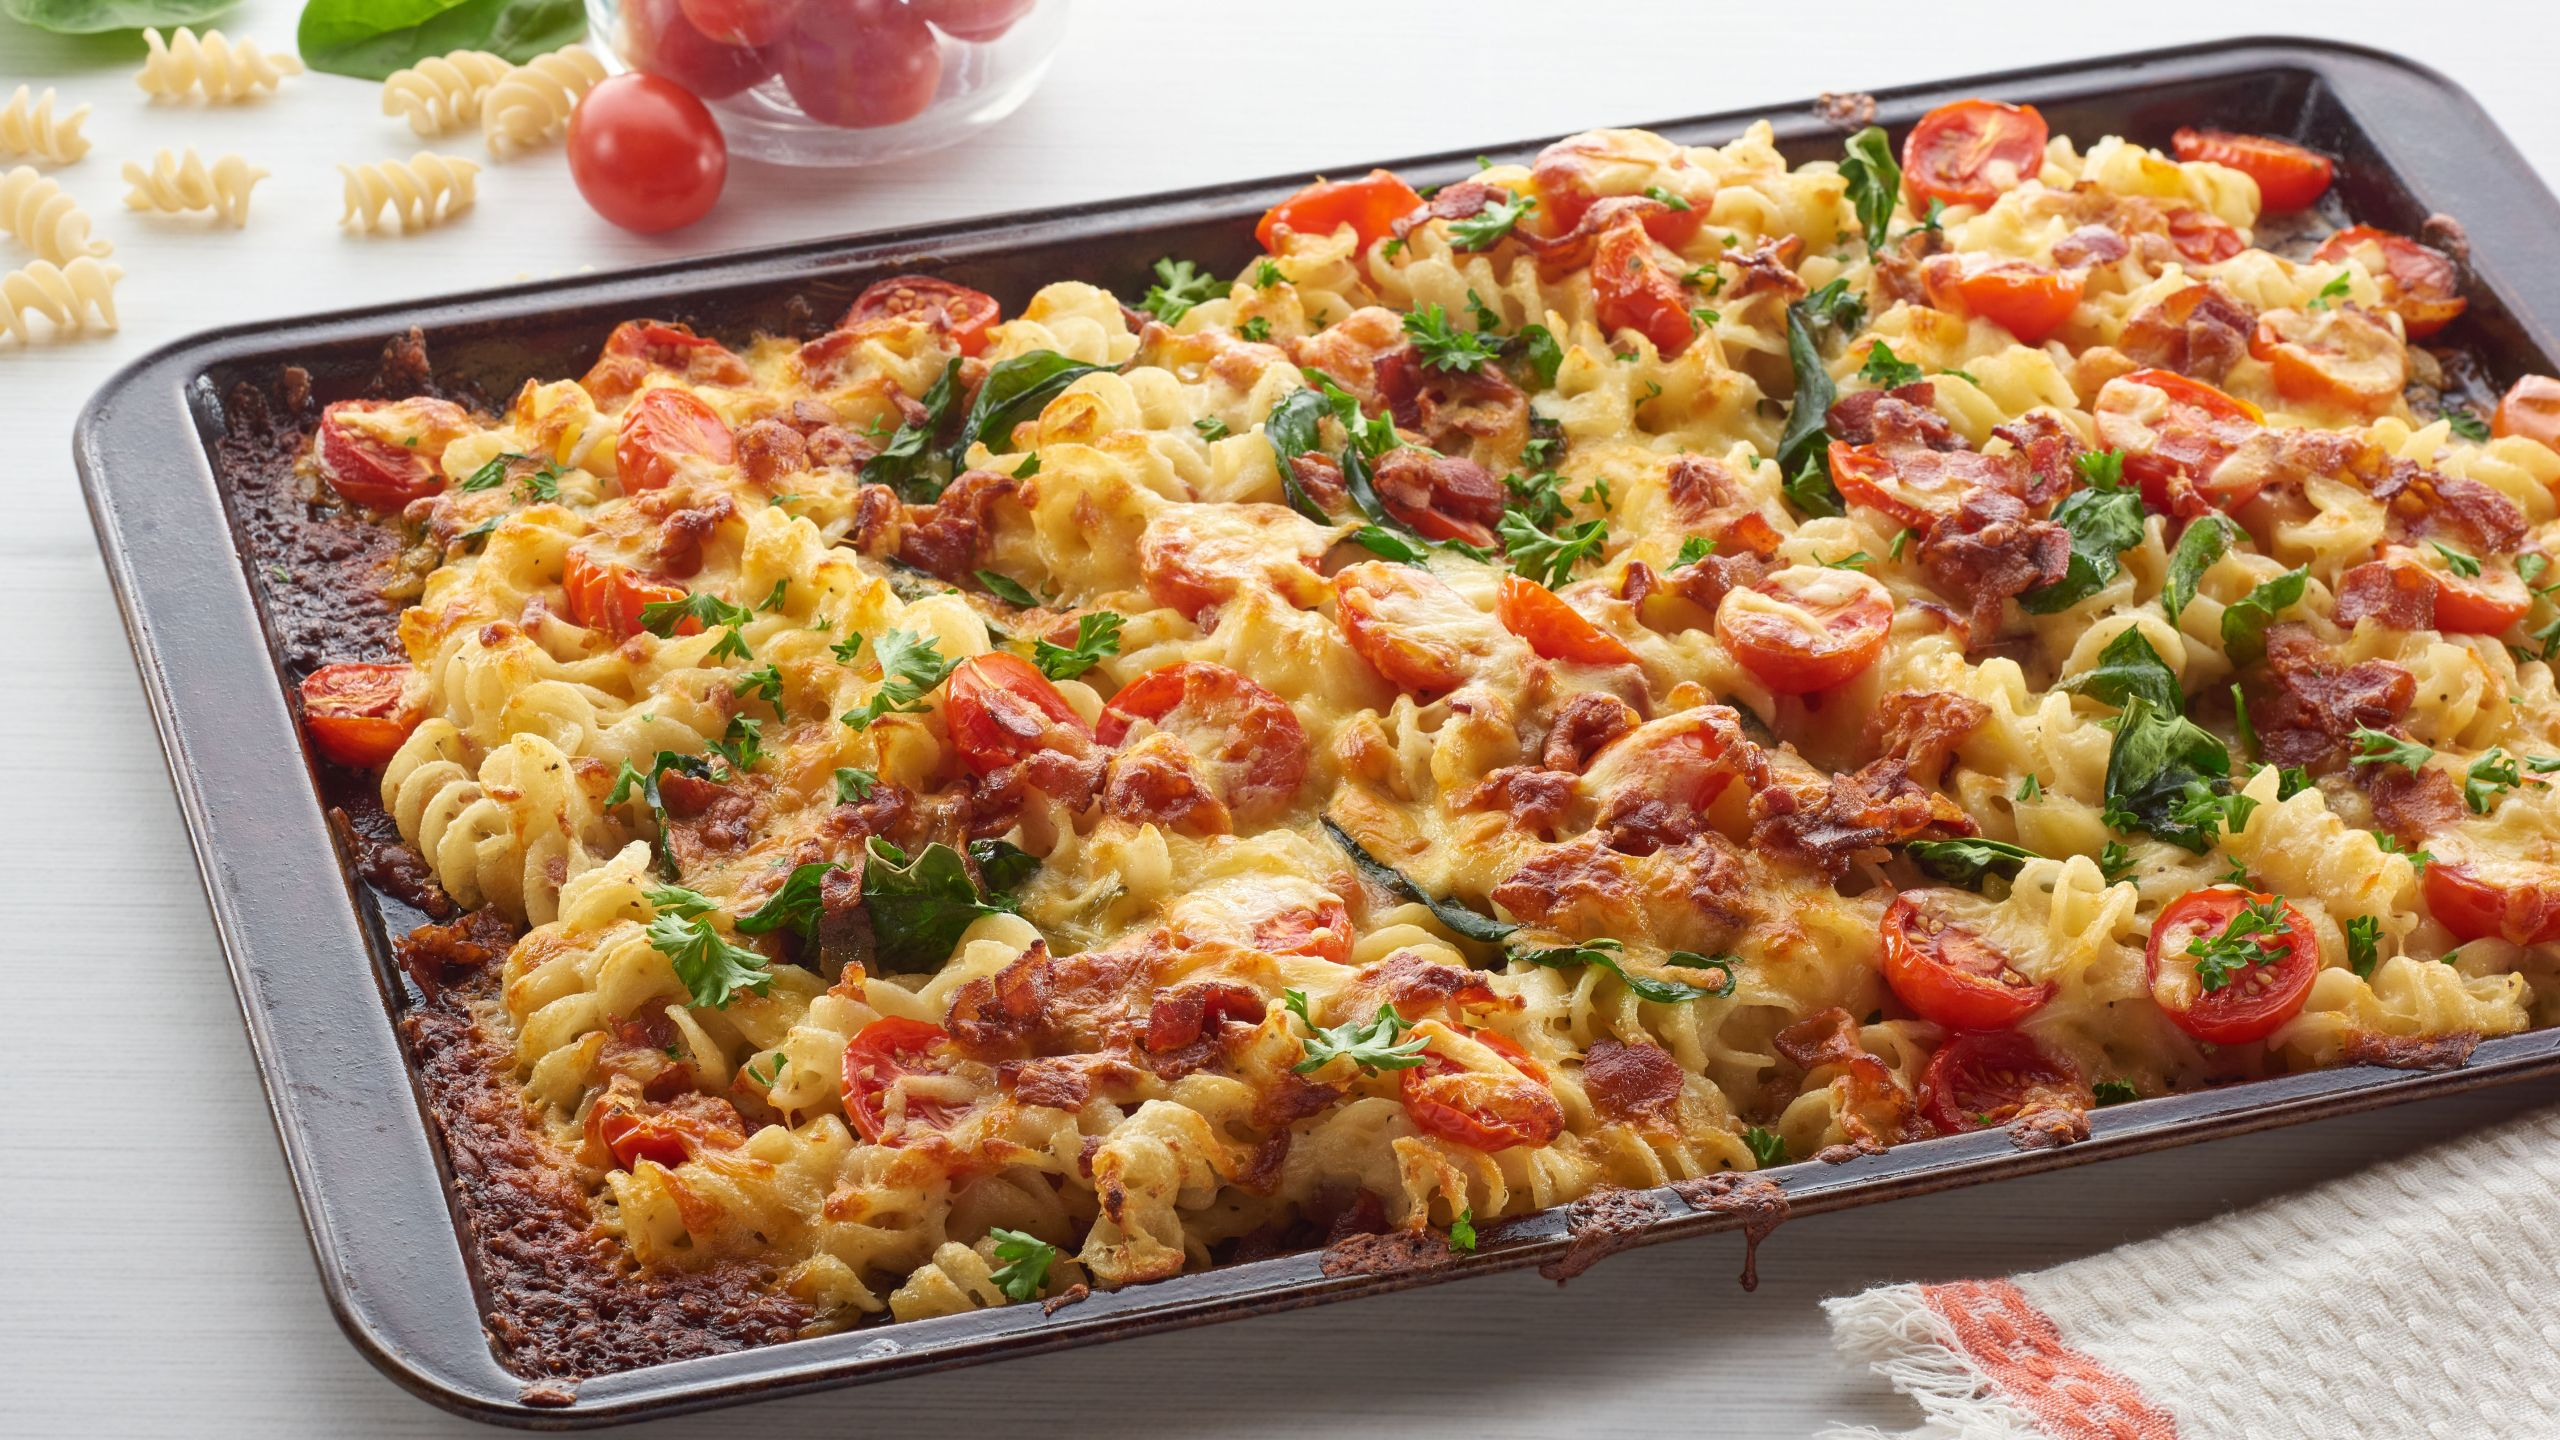 Sheet pan pasta with spinach, tomato, and bacon